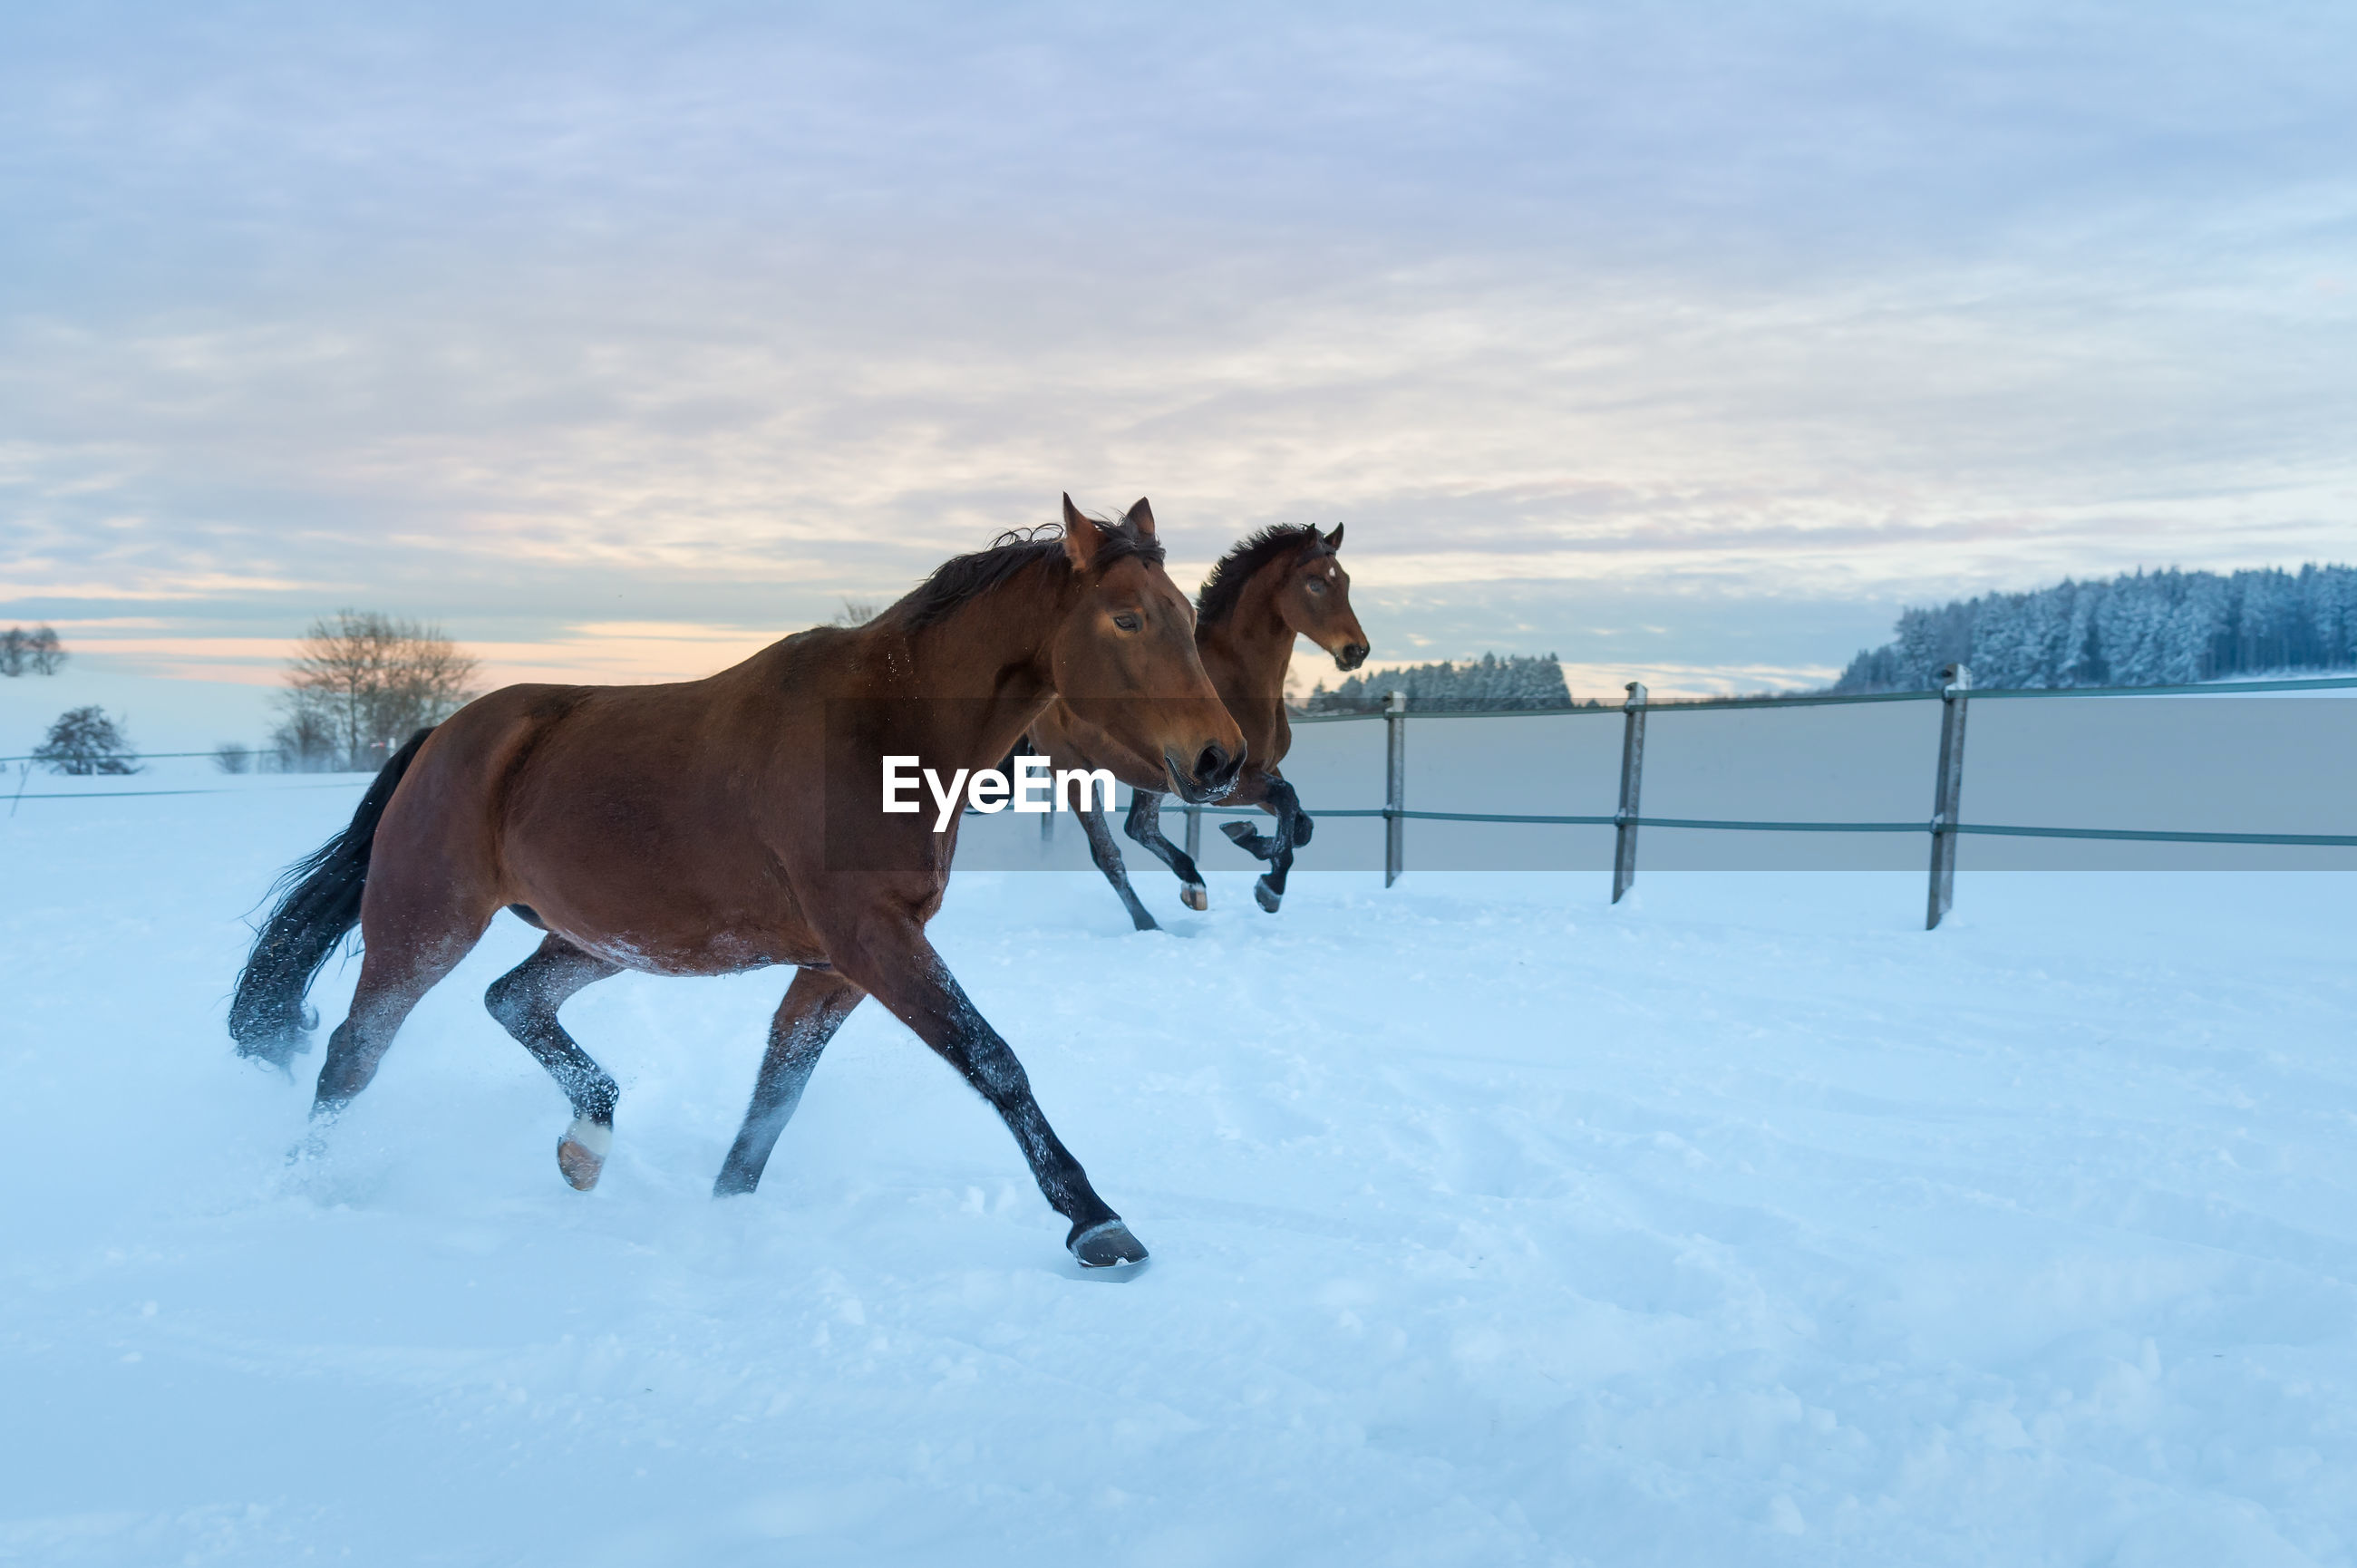 Two horses running fast through the snow at sunset